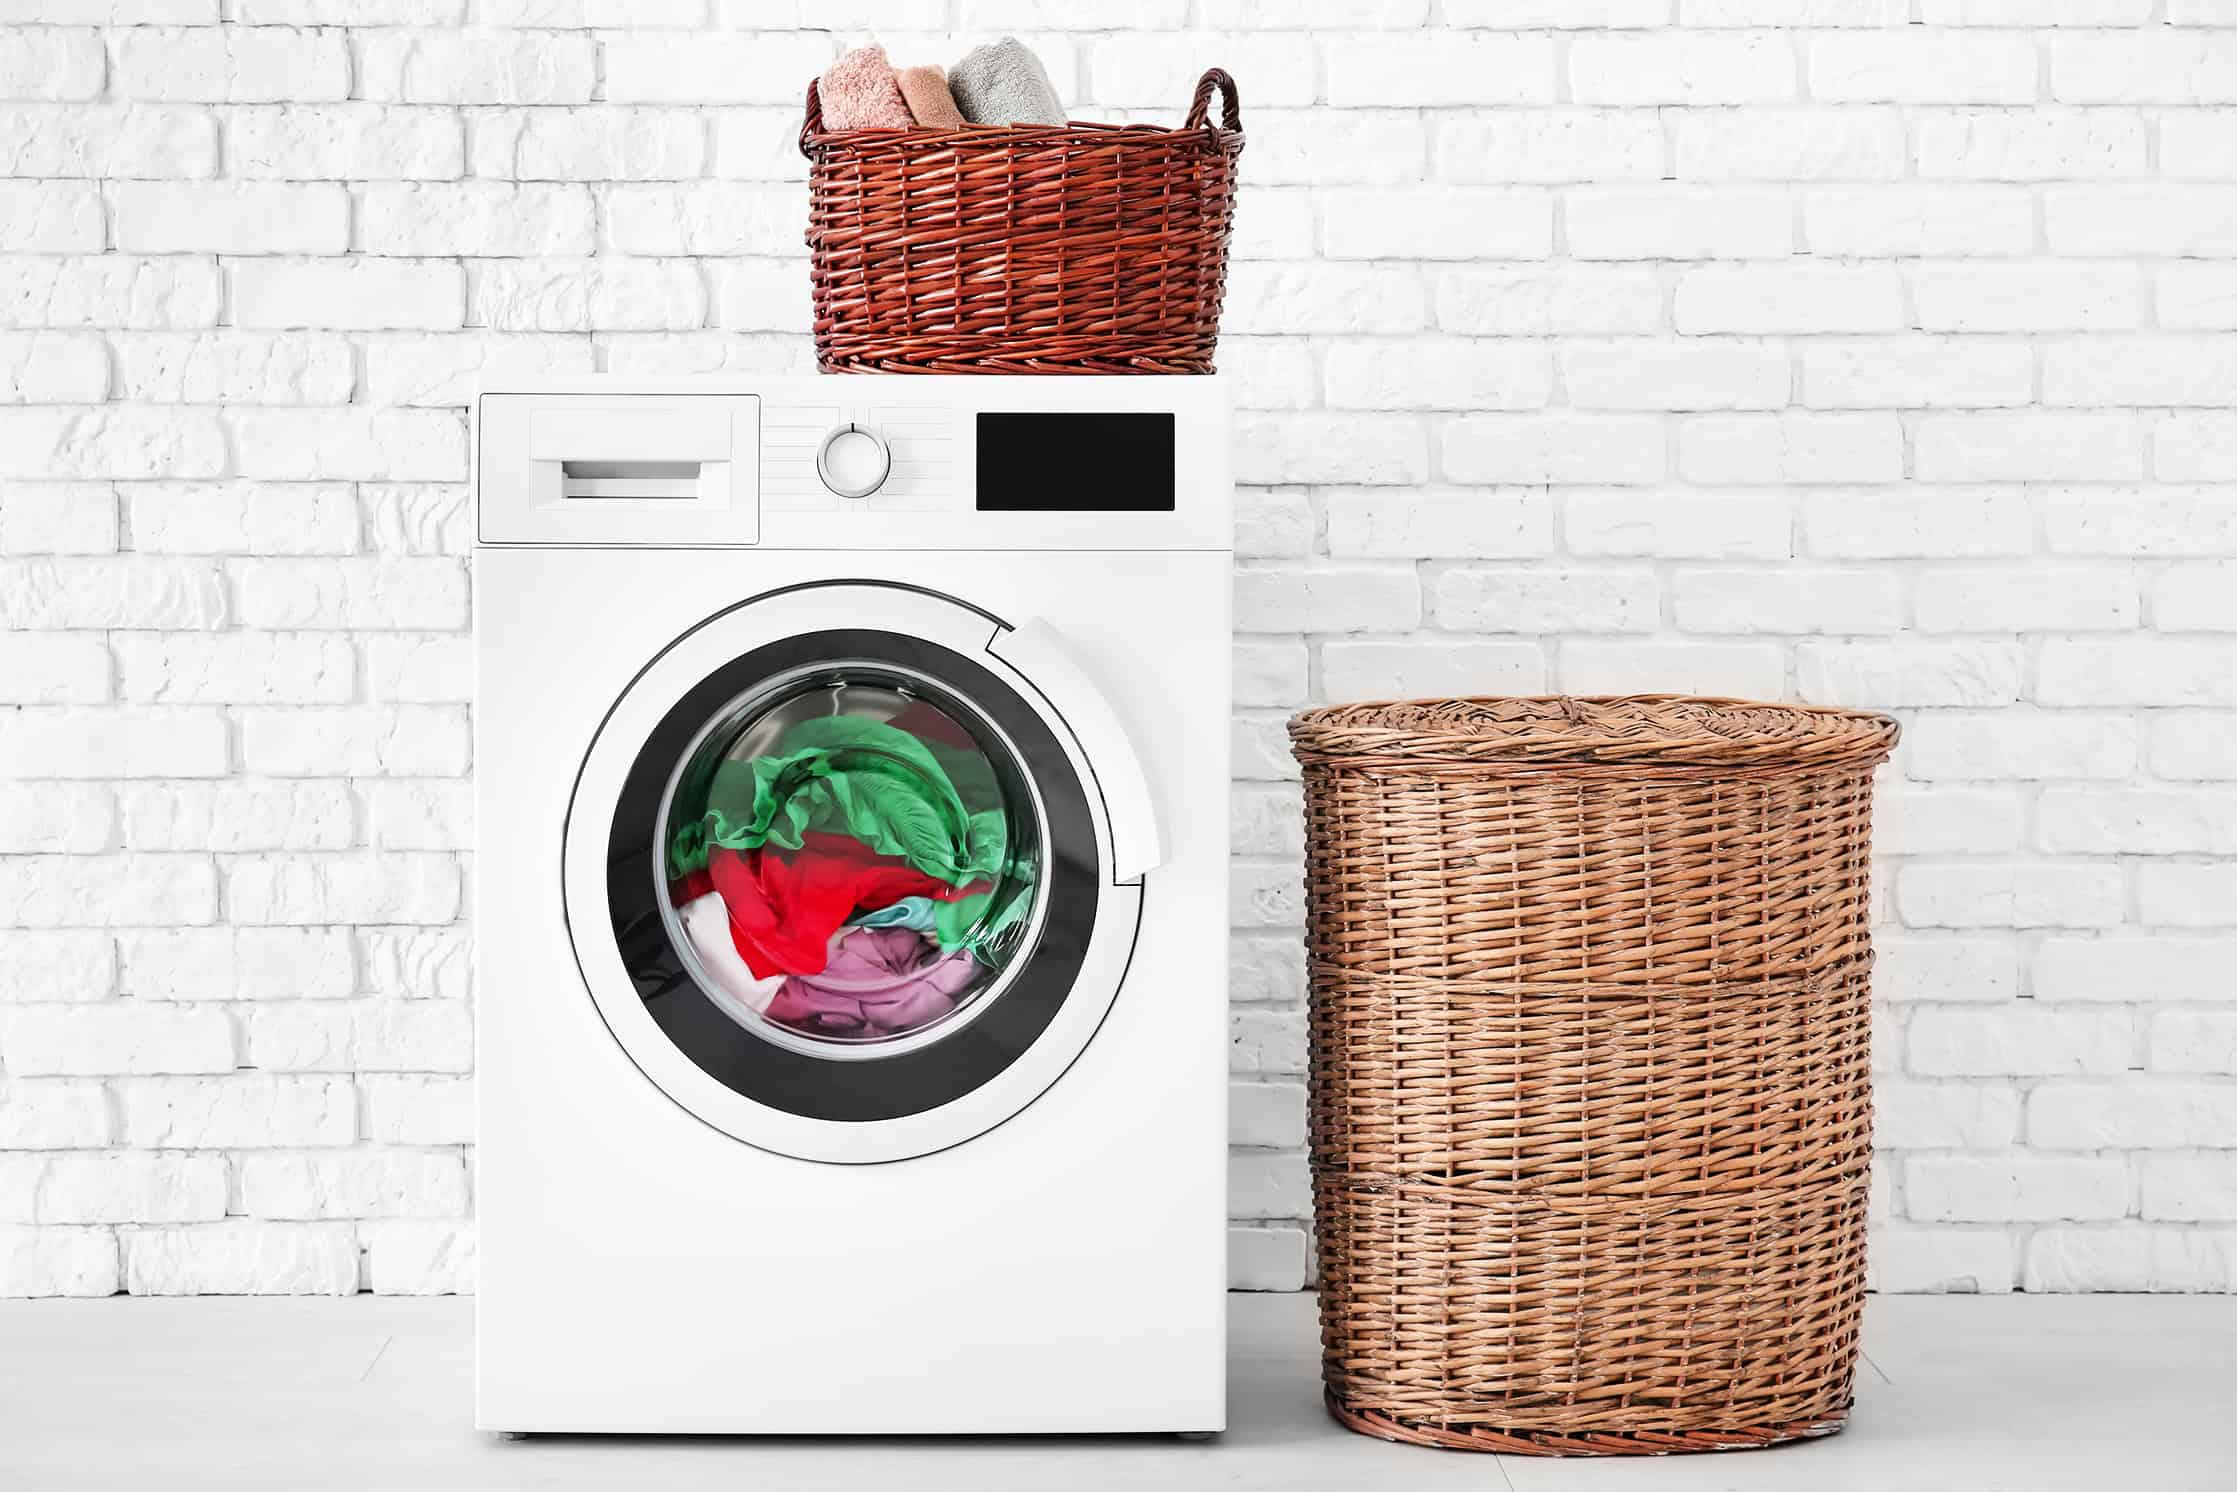 Non-Toxic Laundry Products